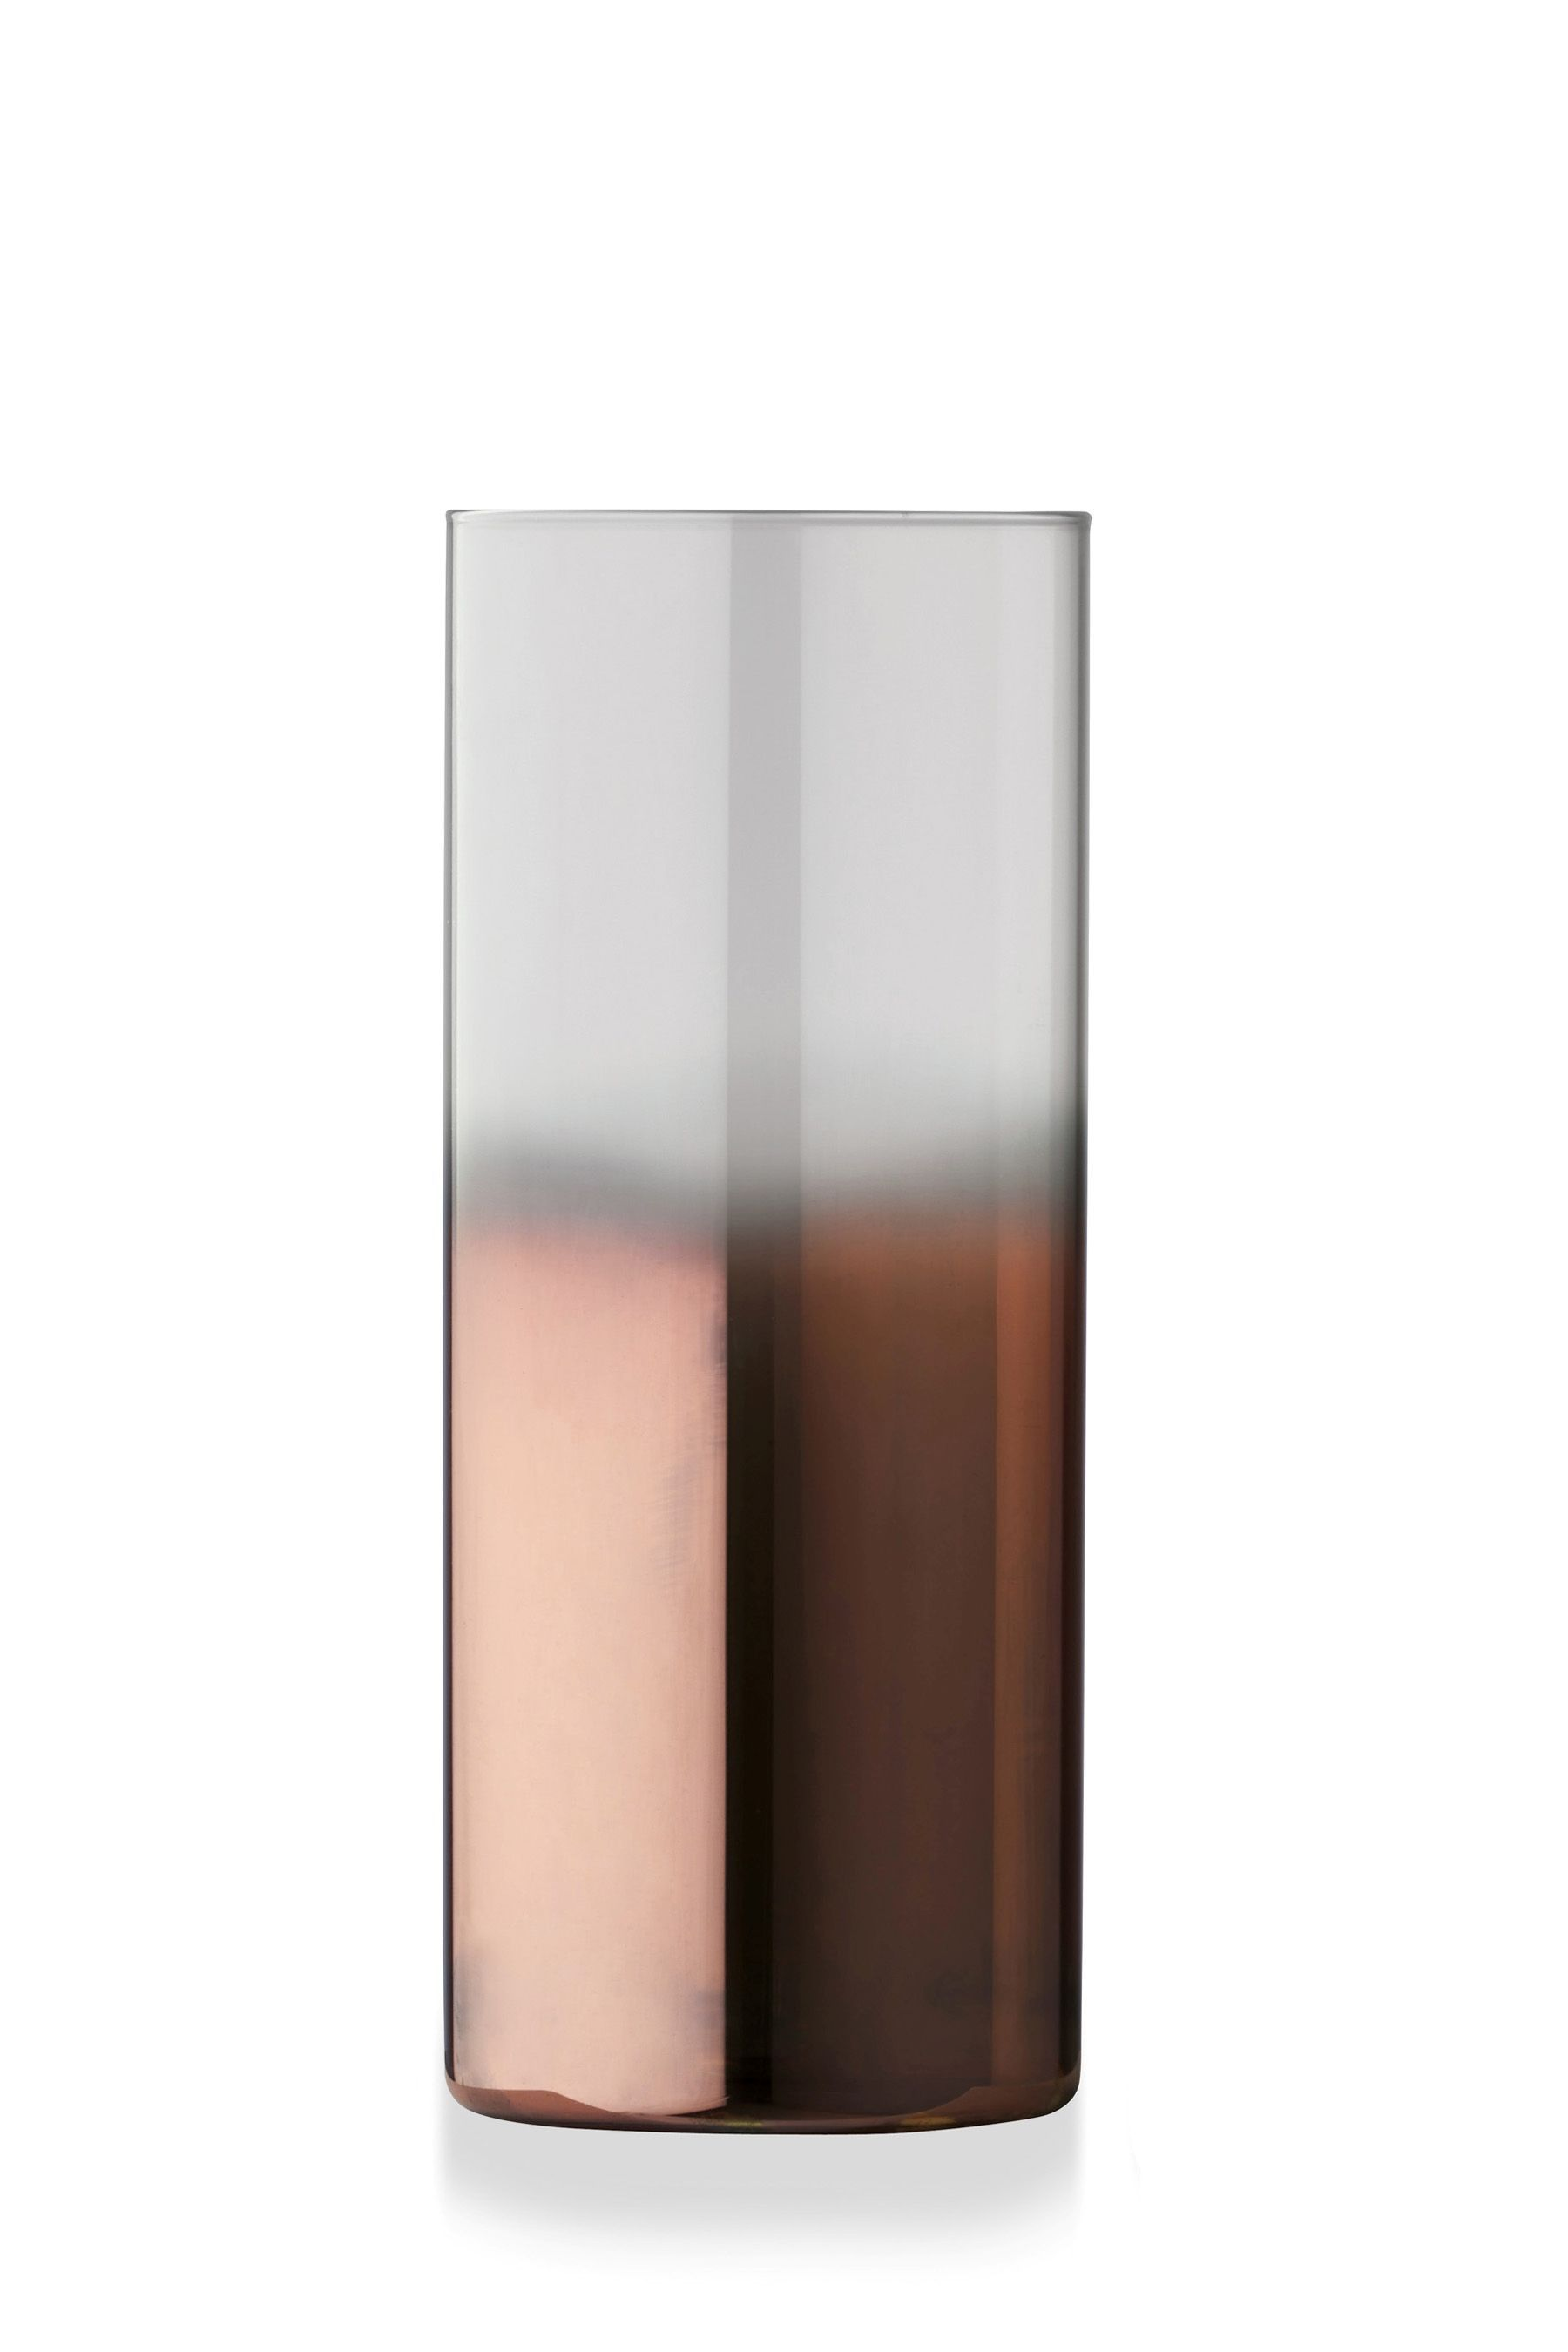 copper ombre vase from the next house home tablette accent fast inexpensive tablecloths led floor lamp eugene table square garden furniture covers small large legs hobby lobby